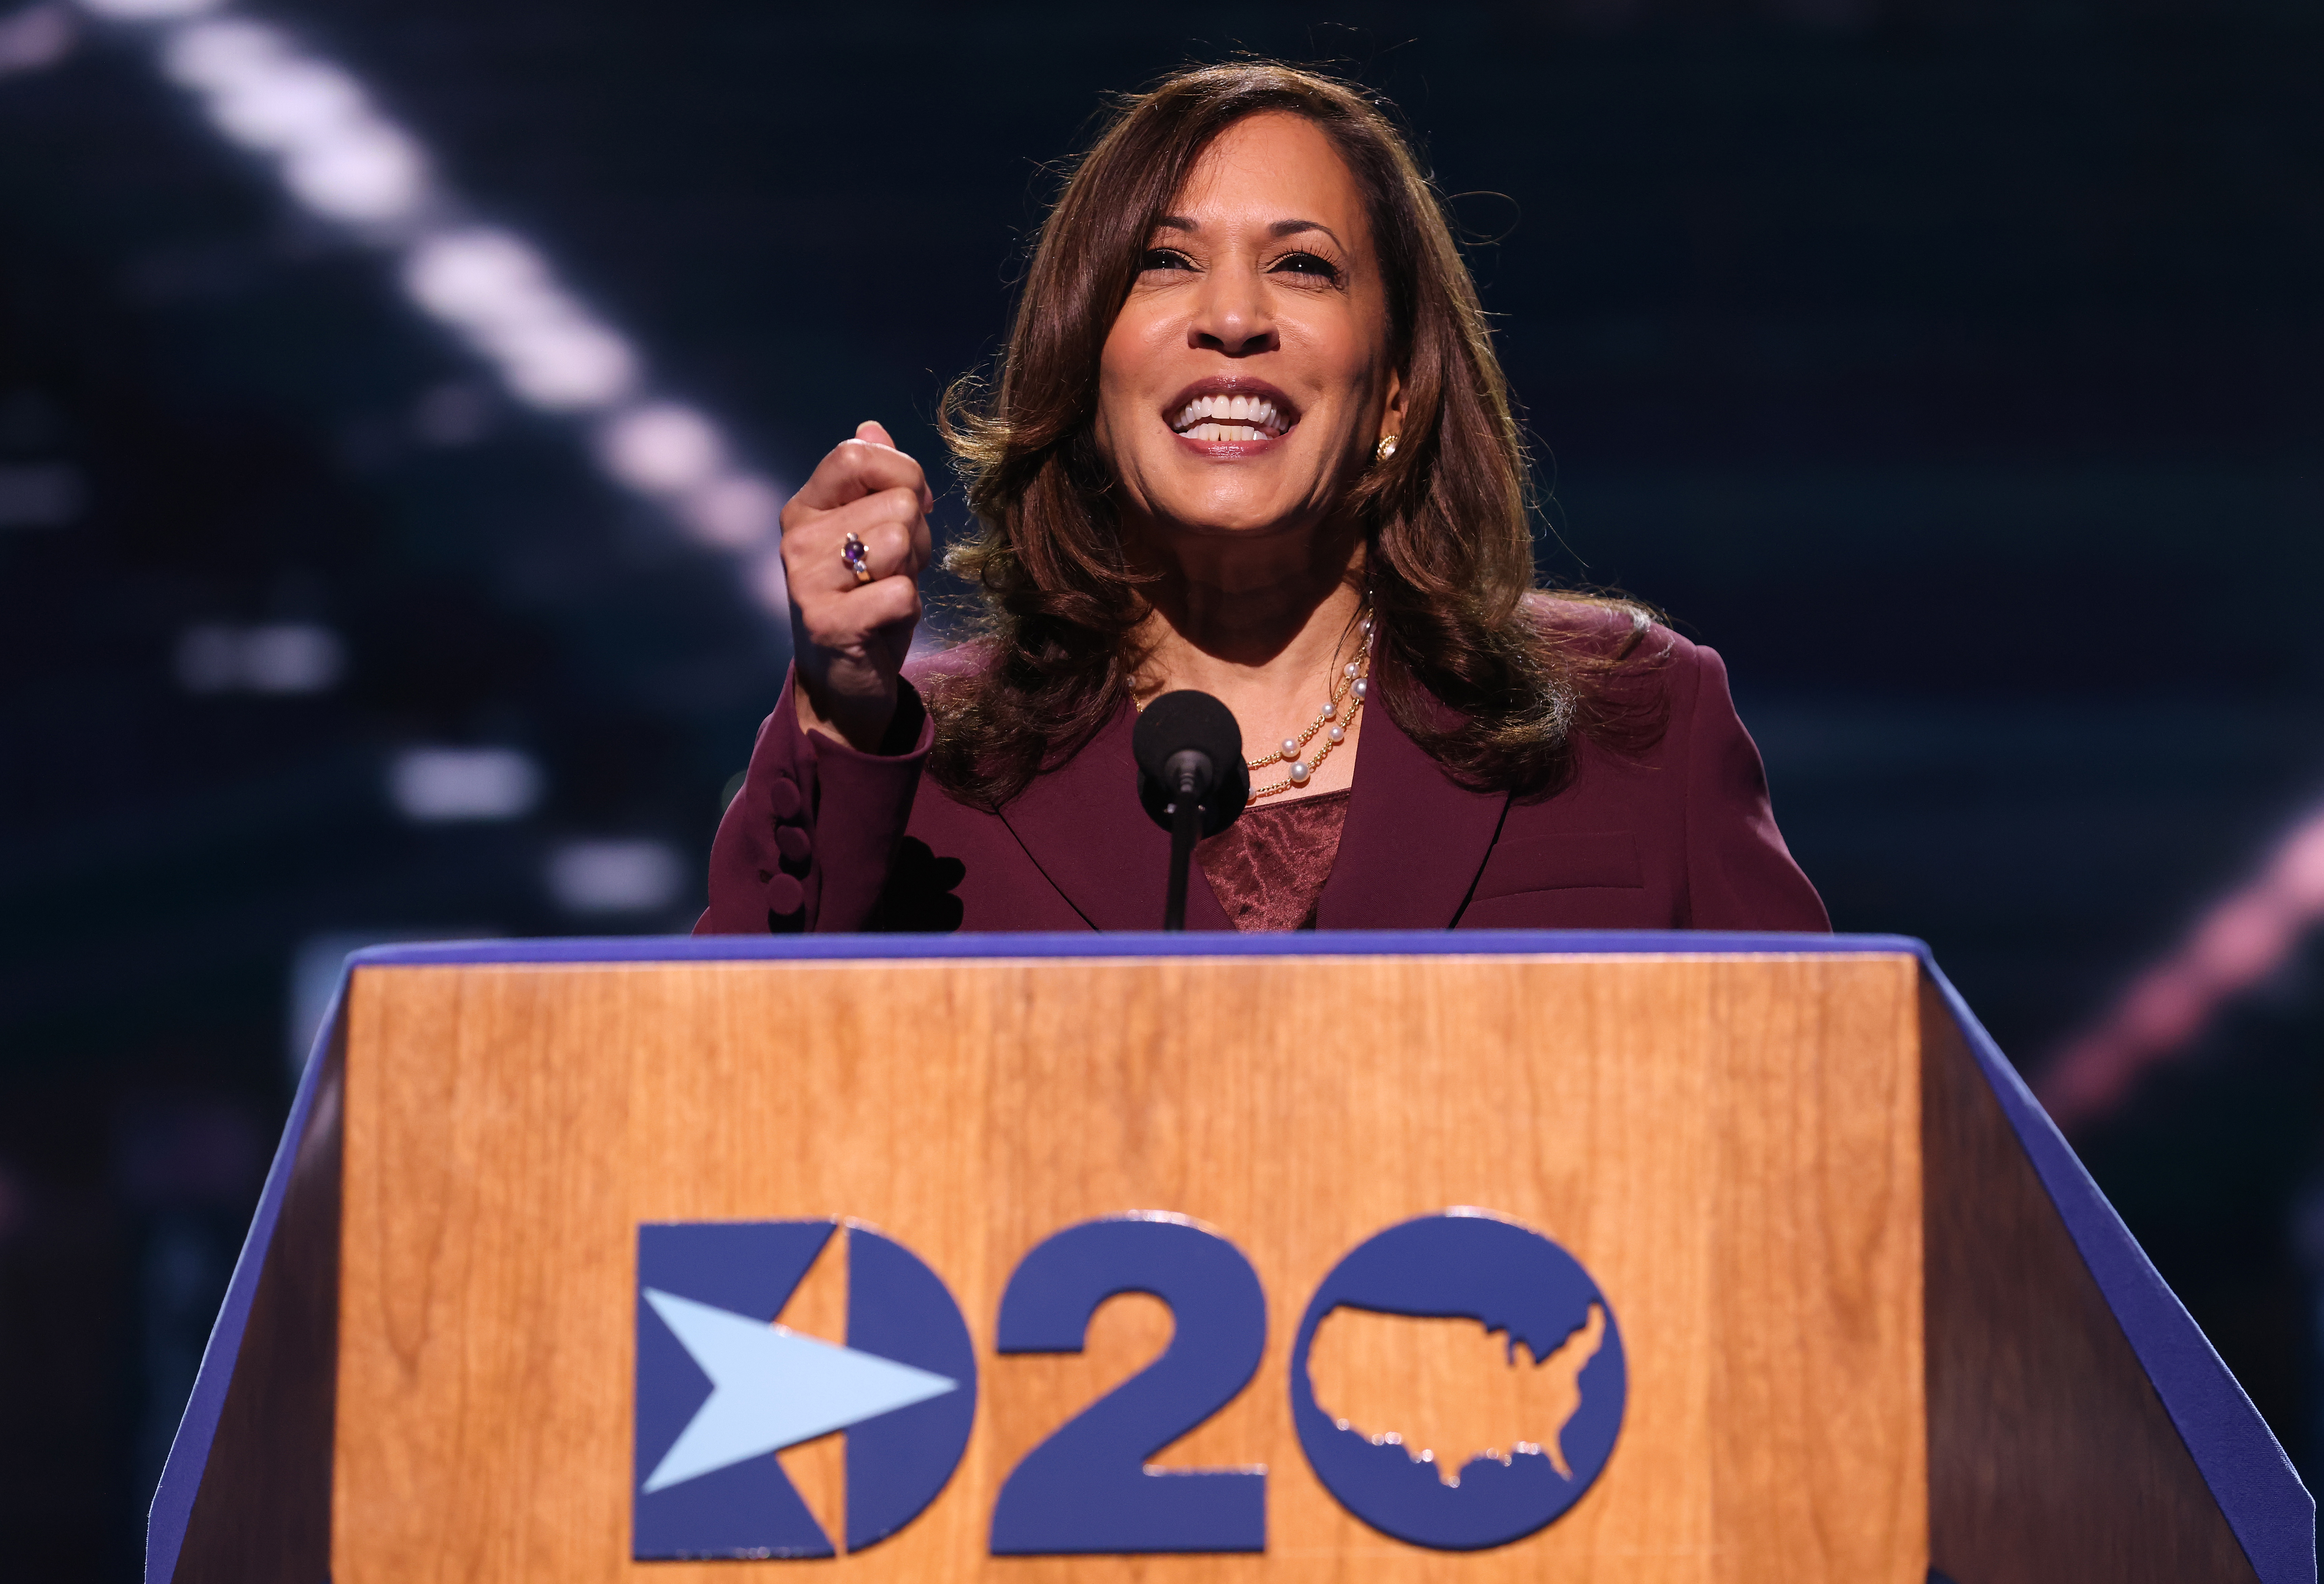 Democratic vice presidential nominee Senator Kamala Harris speaks from behind a podium on the third night of the Democratic National Convention in Wilmington, Delaware.